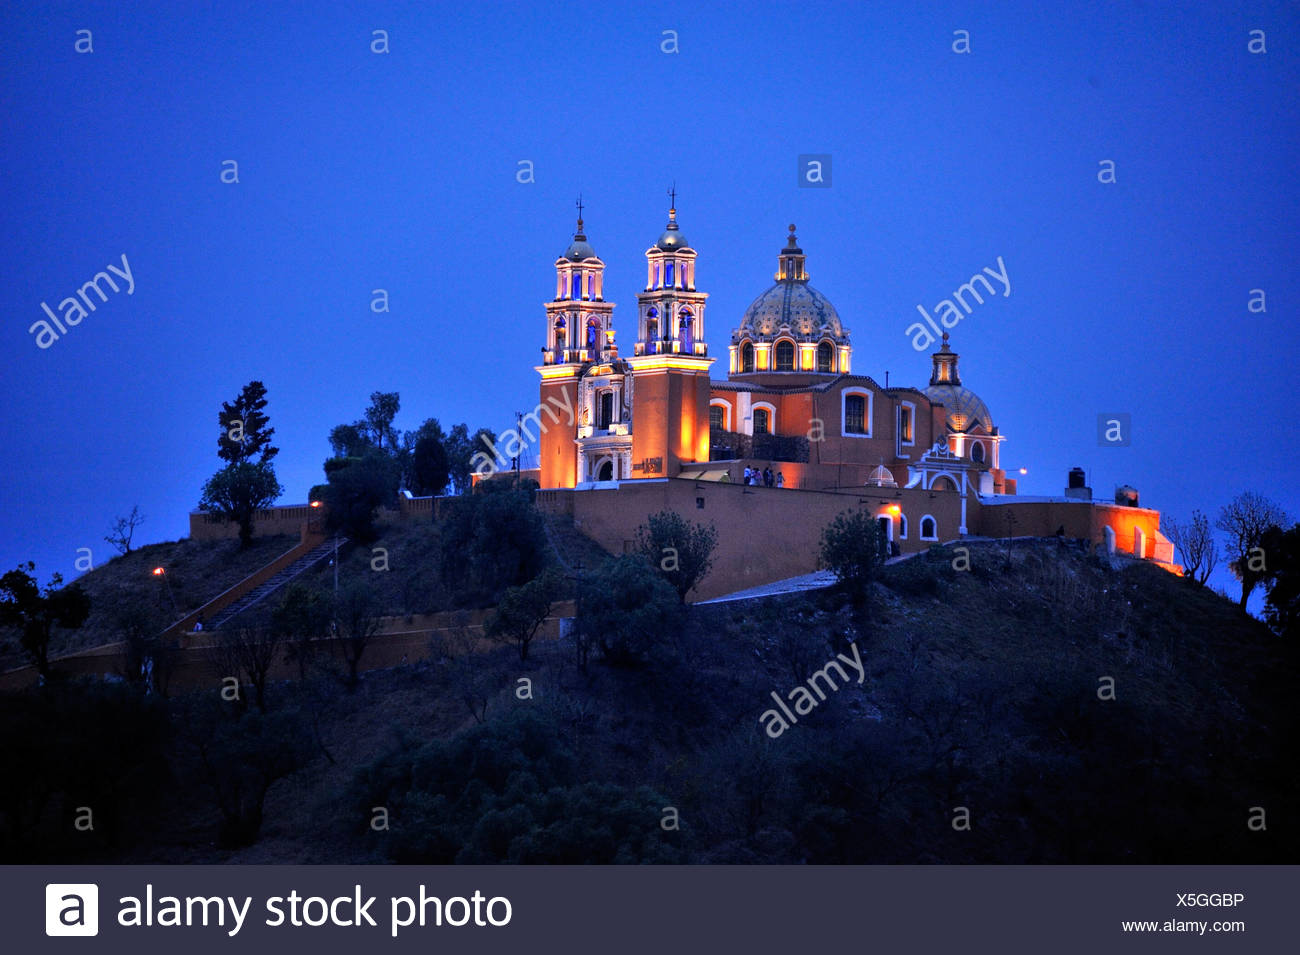 Church of Iglesia Nuestra Senora de los Remedios on the ruins of the pre-Hispanic Pyramid of Cholula at night, , Mexico - Stock Image